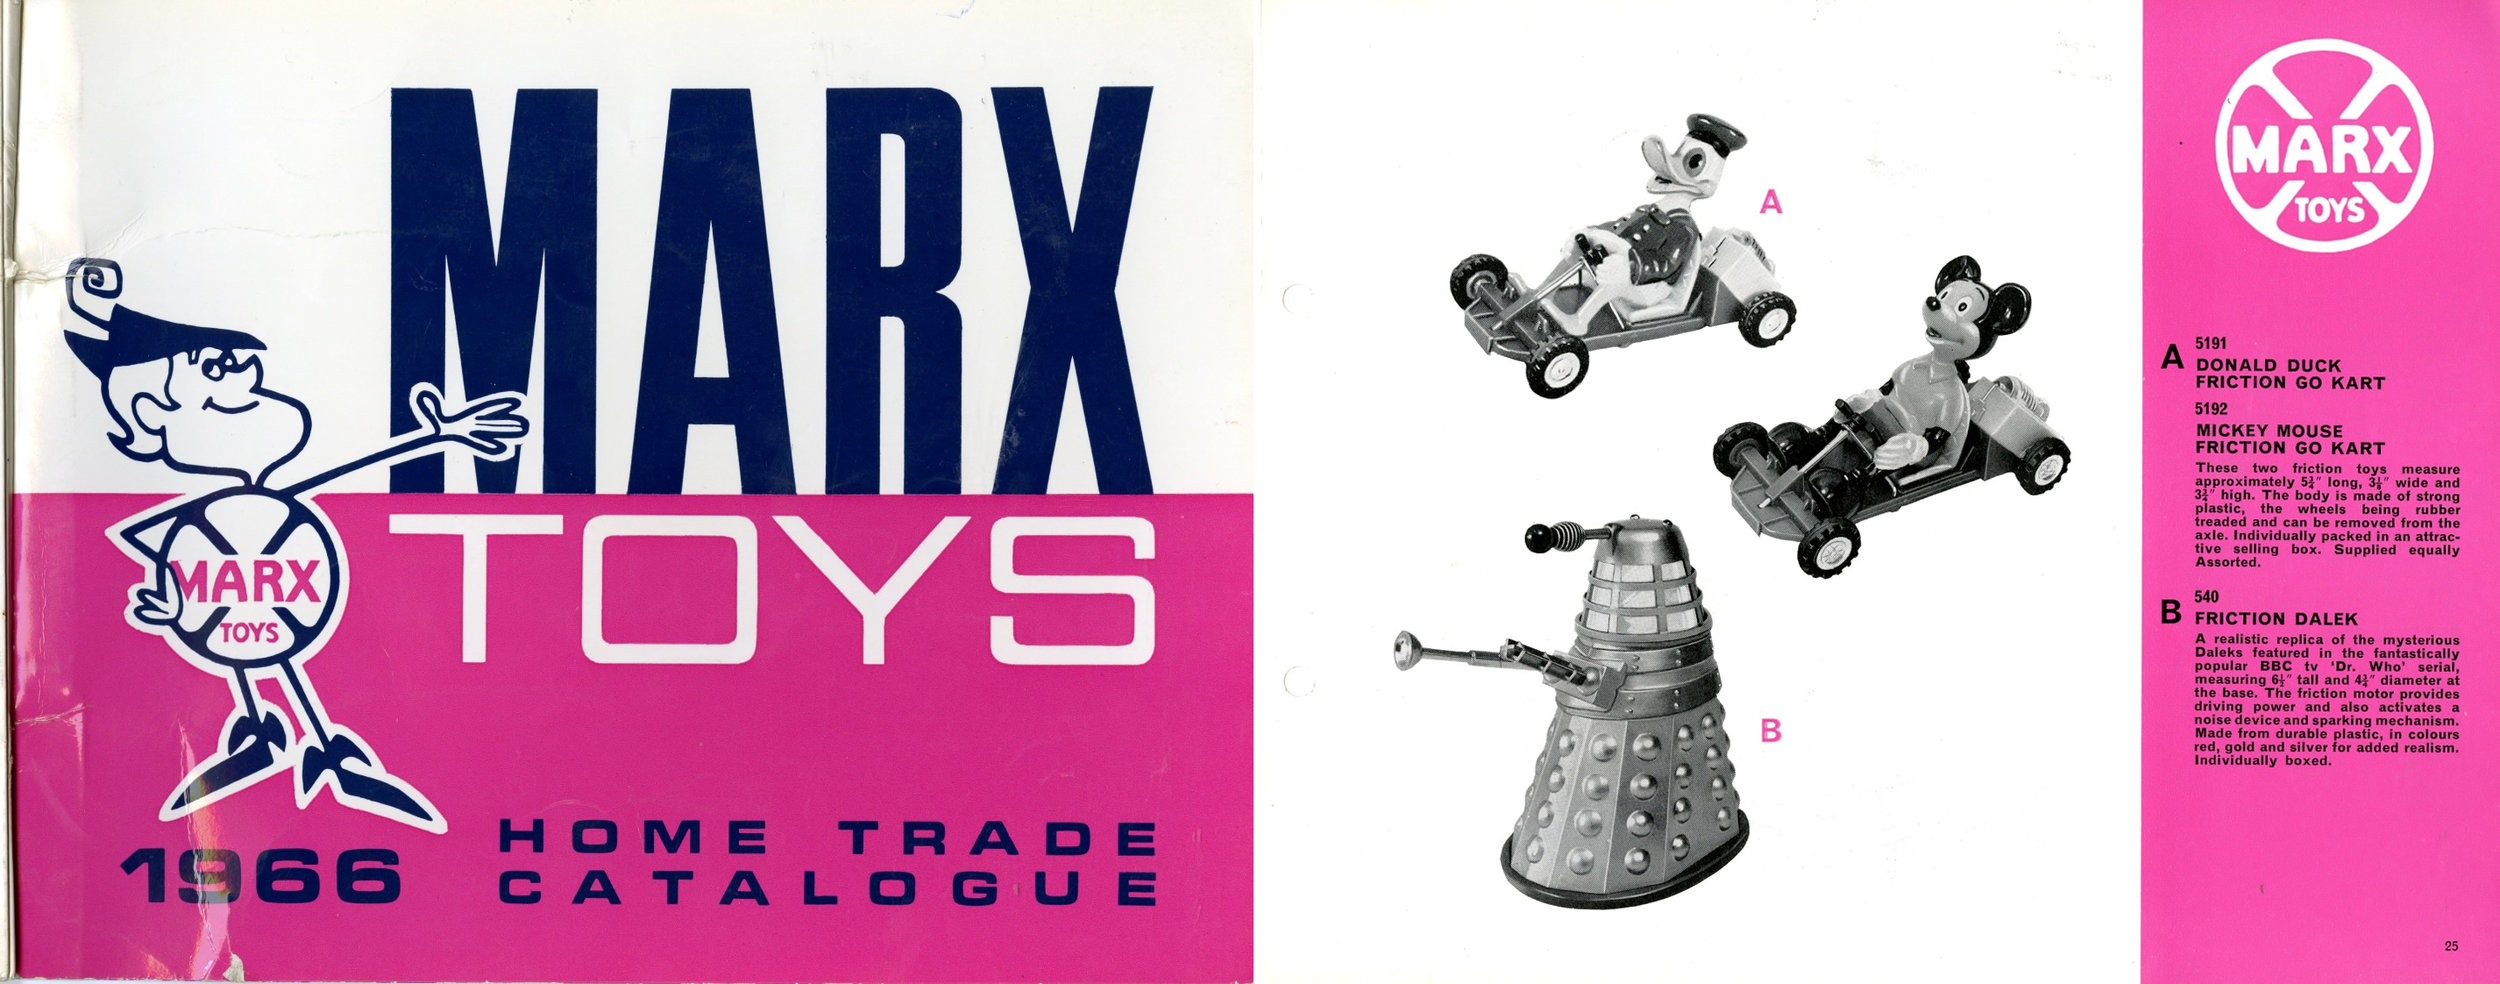 Louis Marx and Company Ltd., Marx Toys 1966 Home Trade Catalogue showing friction-drive Dalek.